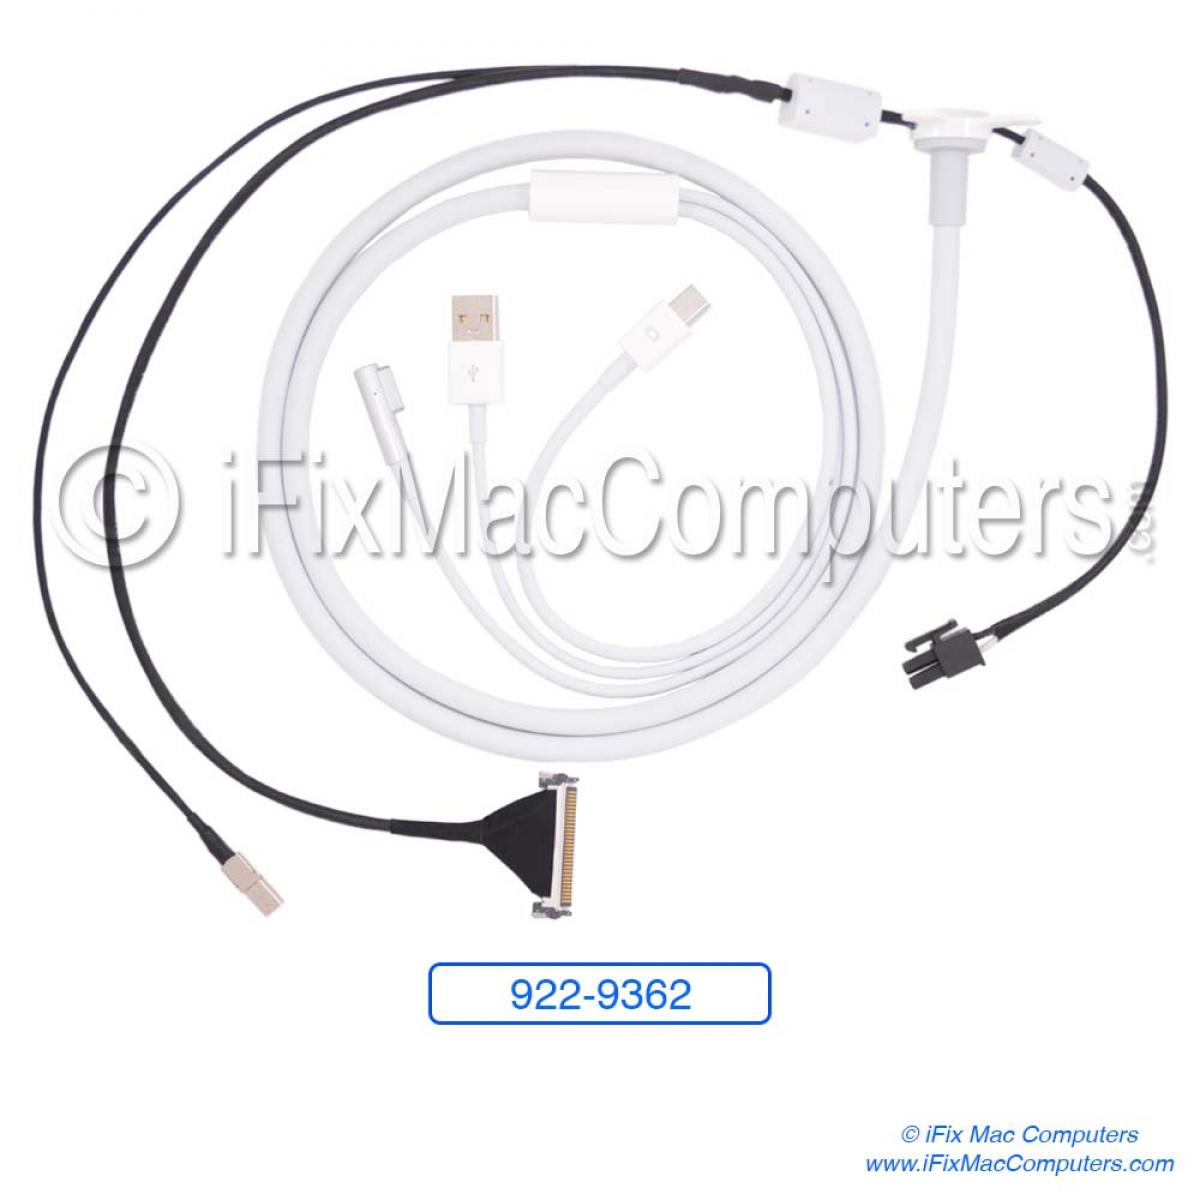 922-9362 Cable All In One, LED Cinema Display 27inch A1316